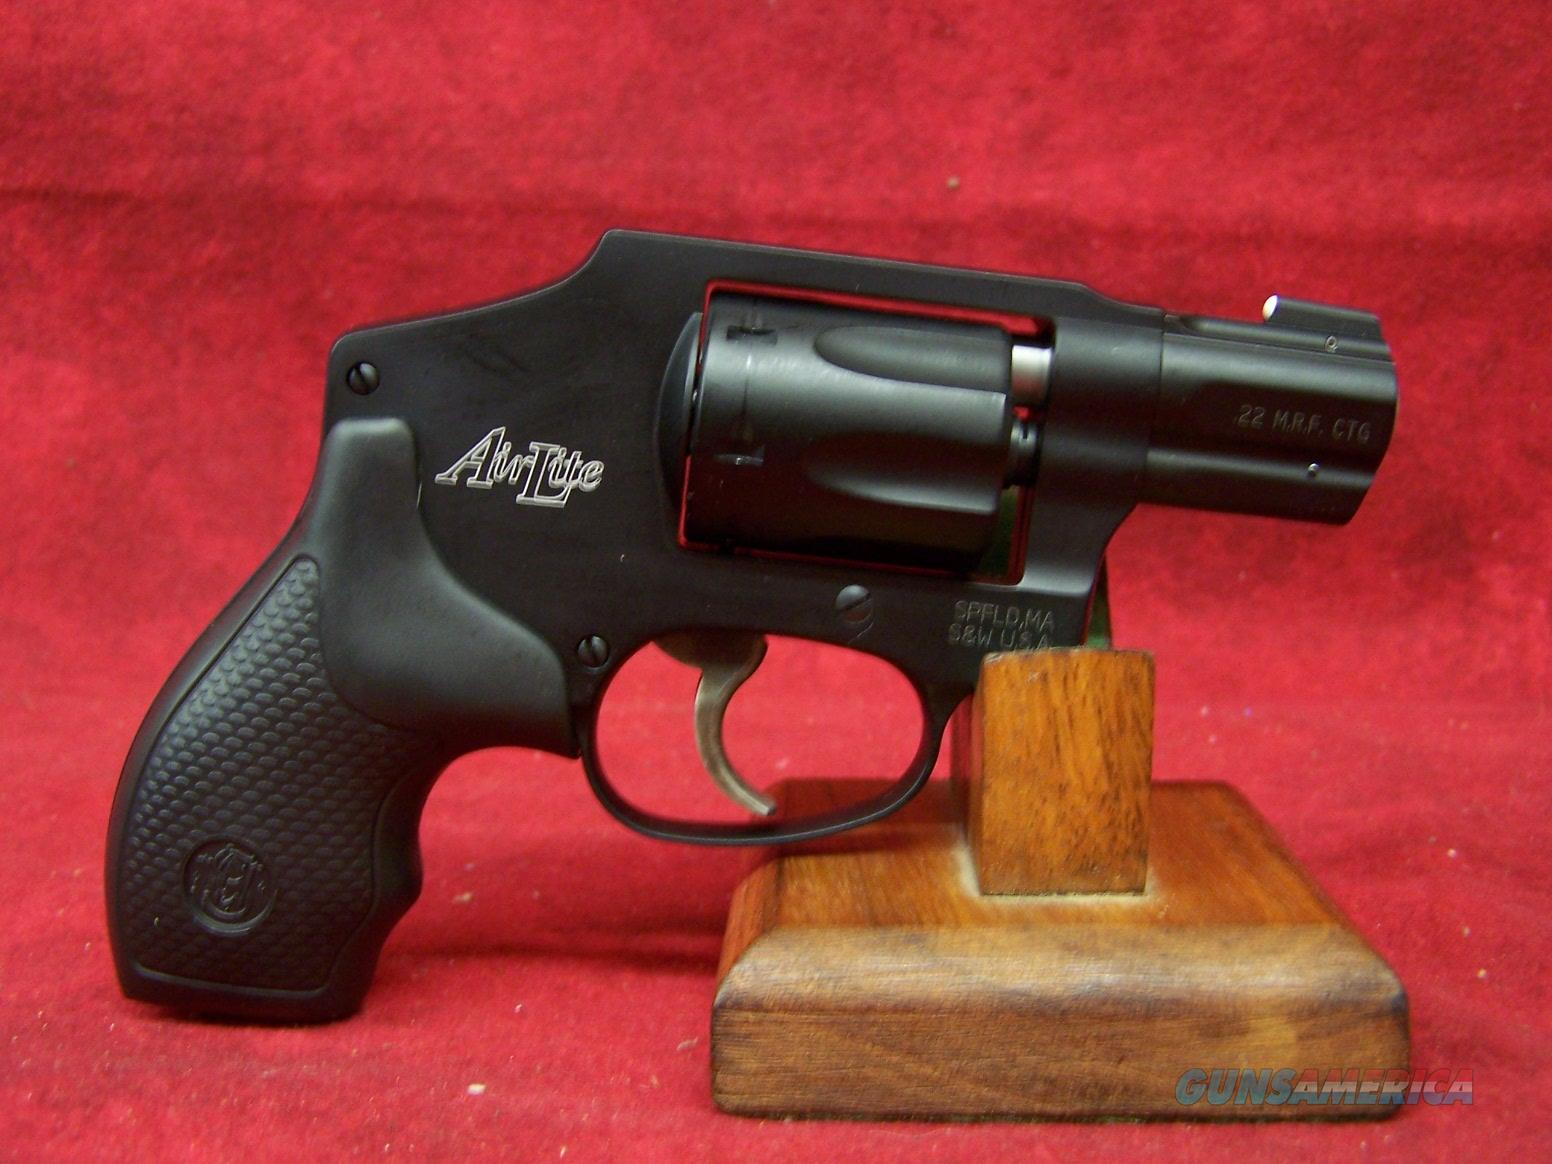 Smith & Wesson 351C AirLite .22 Magnum 1.875 Inch Barrel (103351)  Guns > Pistols > Smith & Wesson Revolvers > Small Frame ( J )